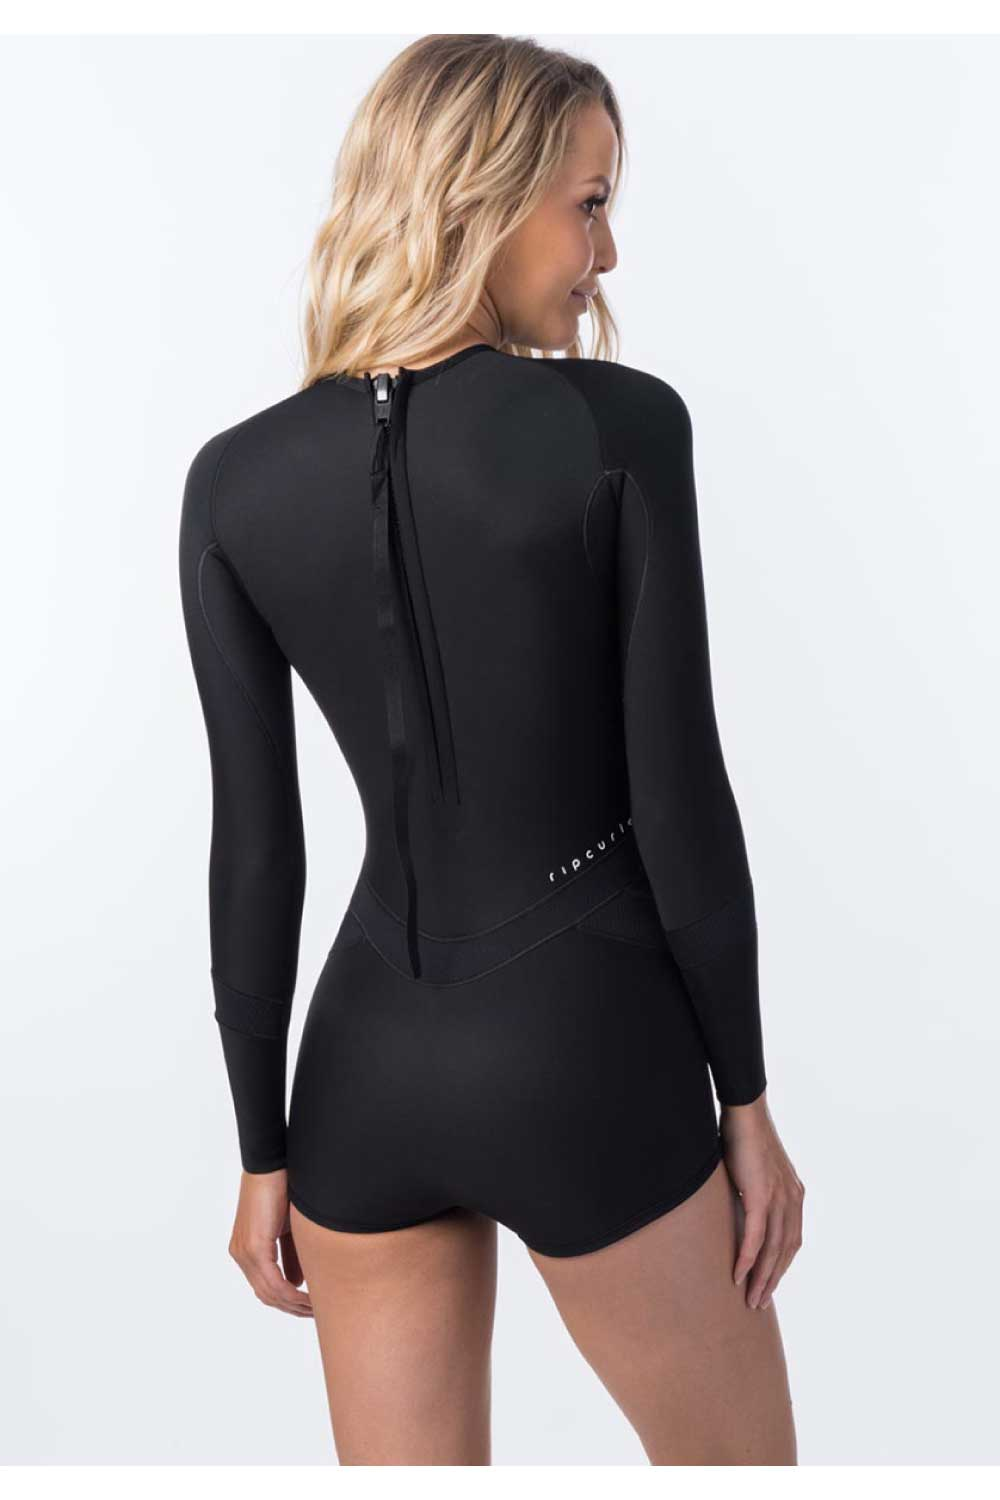 Rip Curl G-Bomb Madison Long Sleeve Boyleg Spring Wetsuit